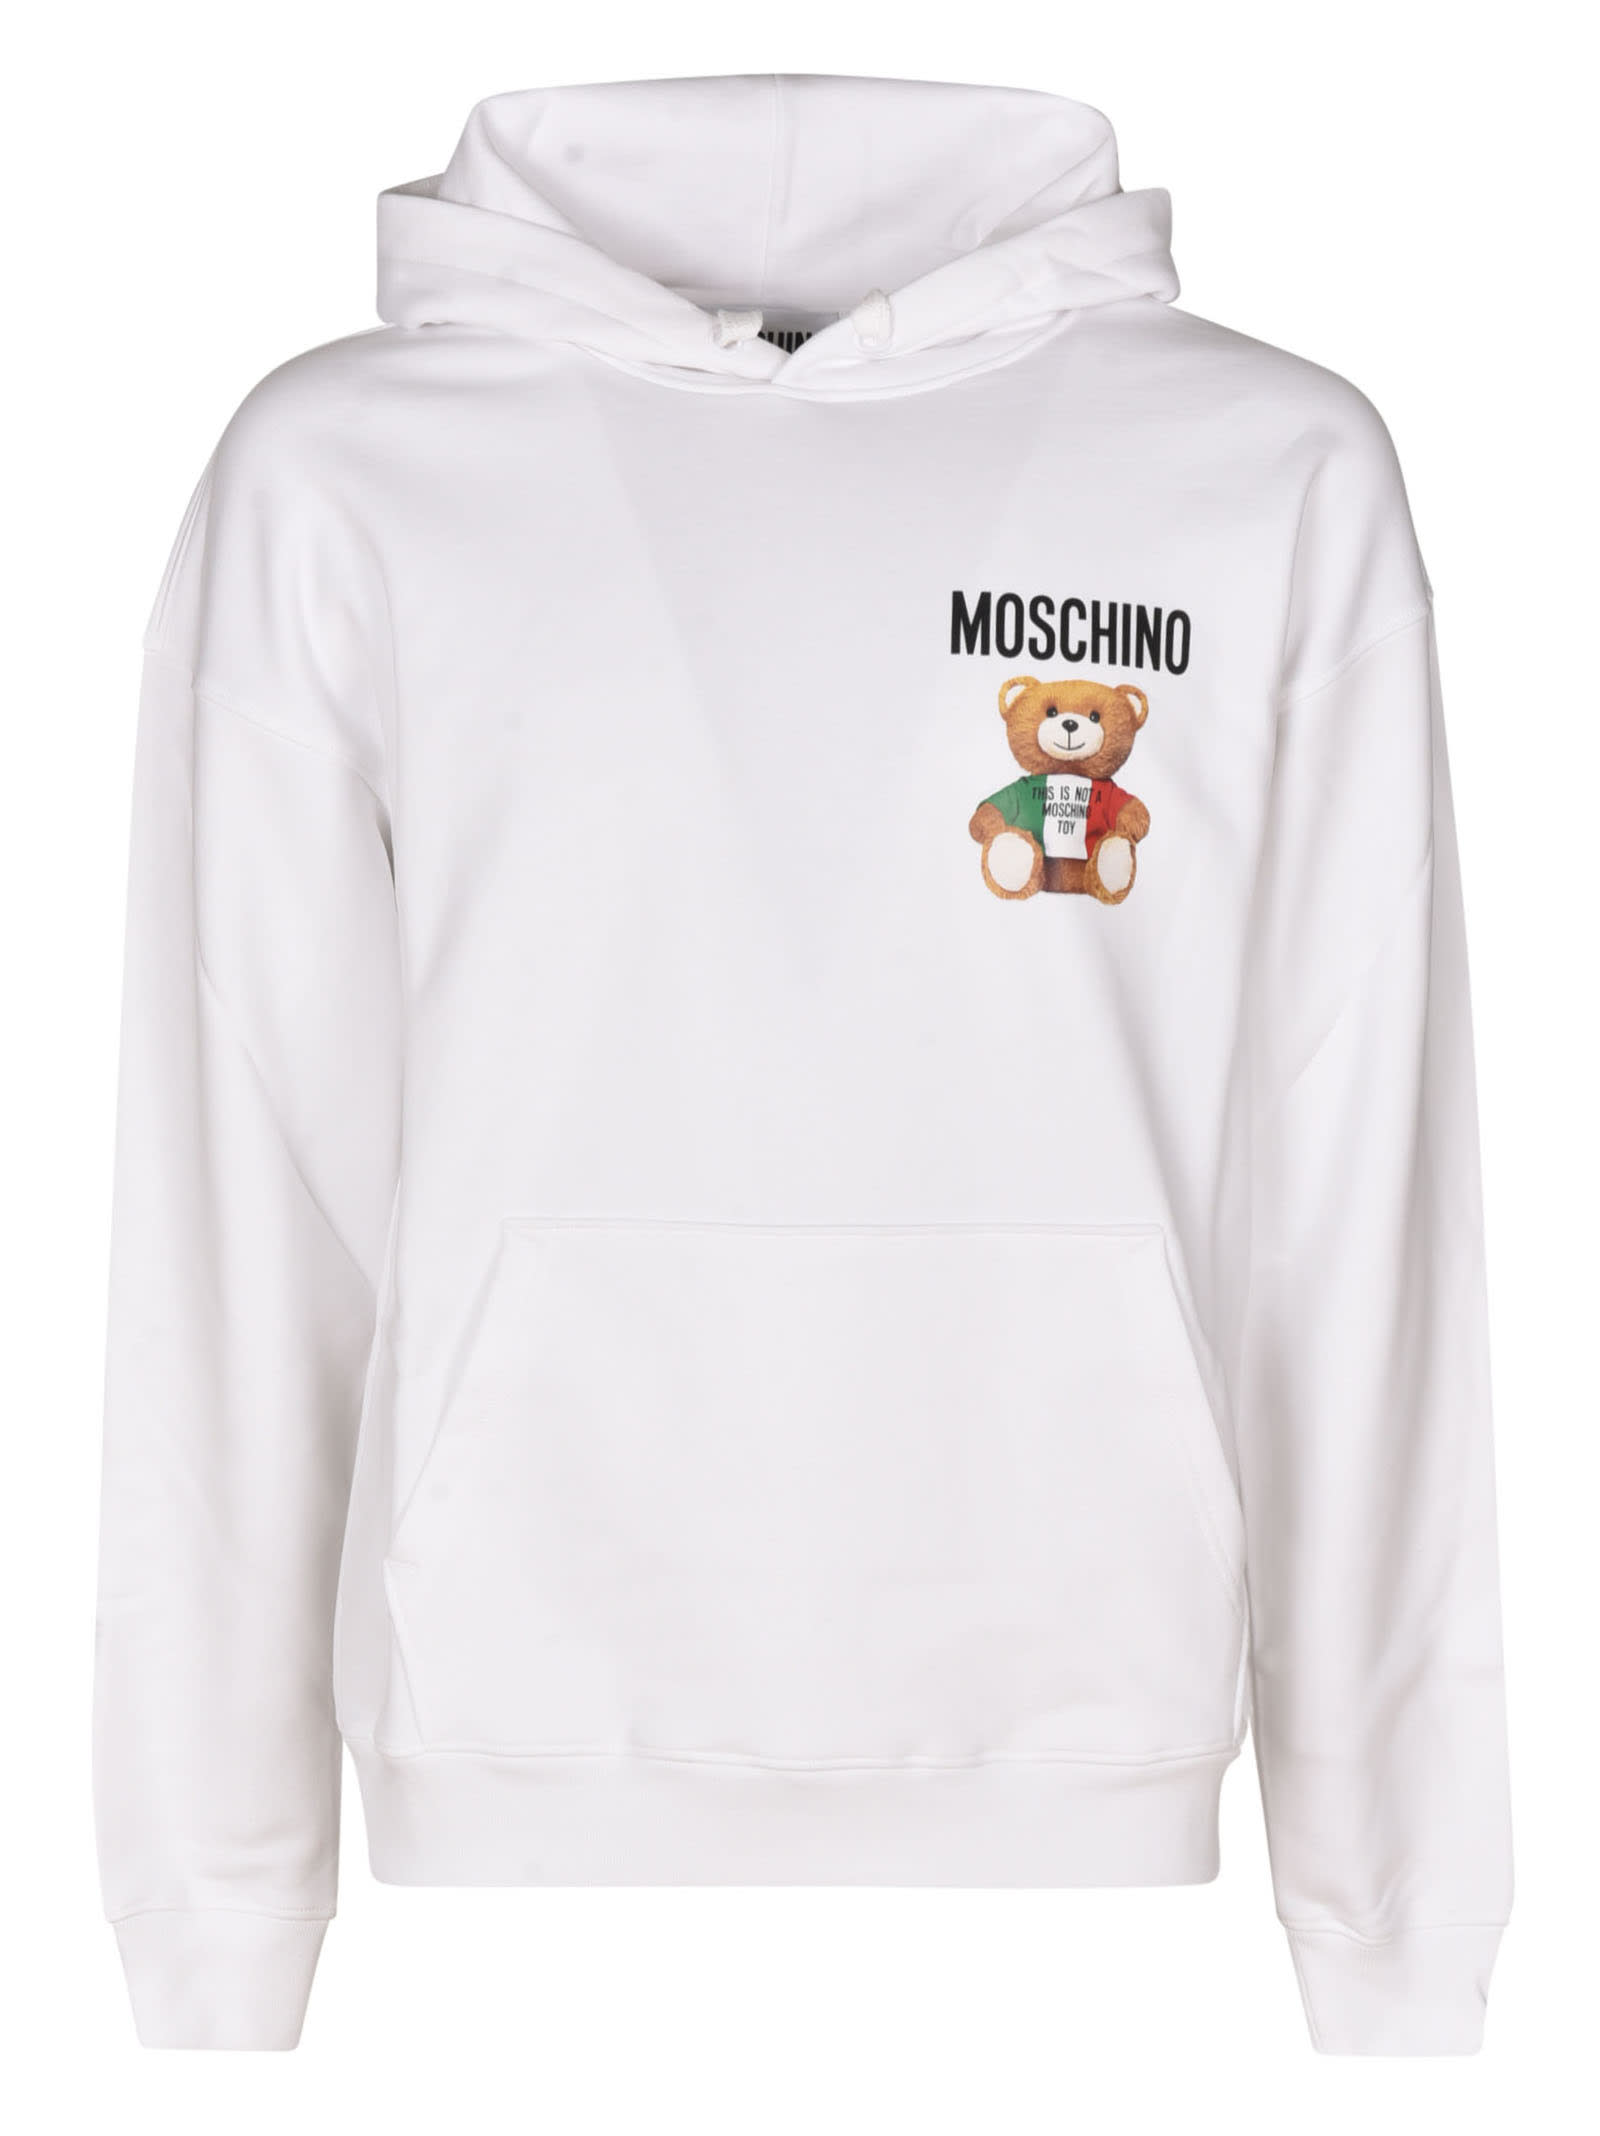 Moschino TOY BEAR SWEATSHIRT